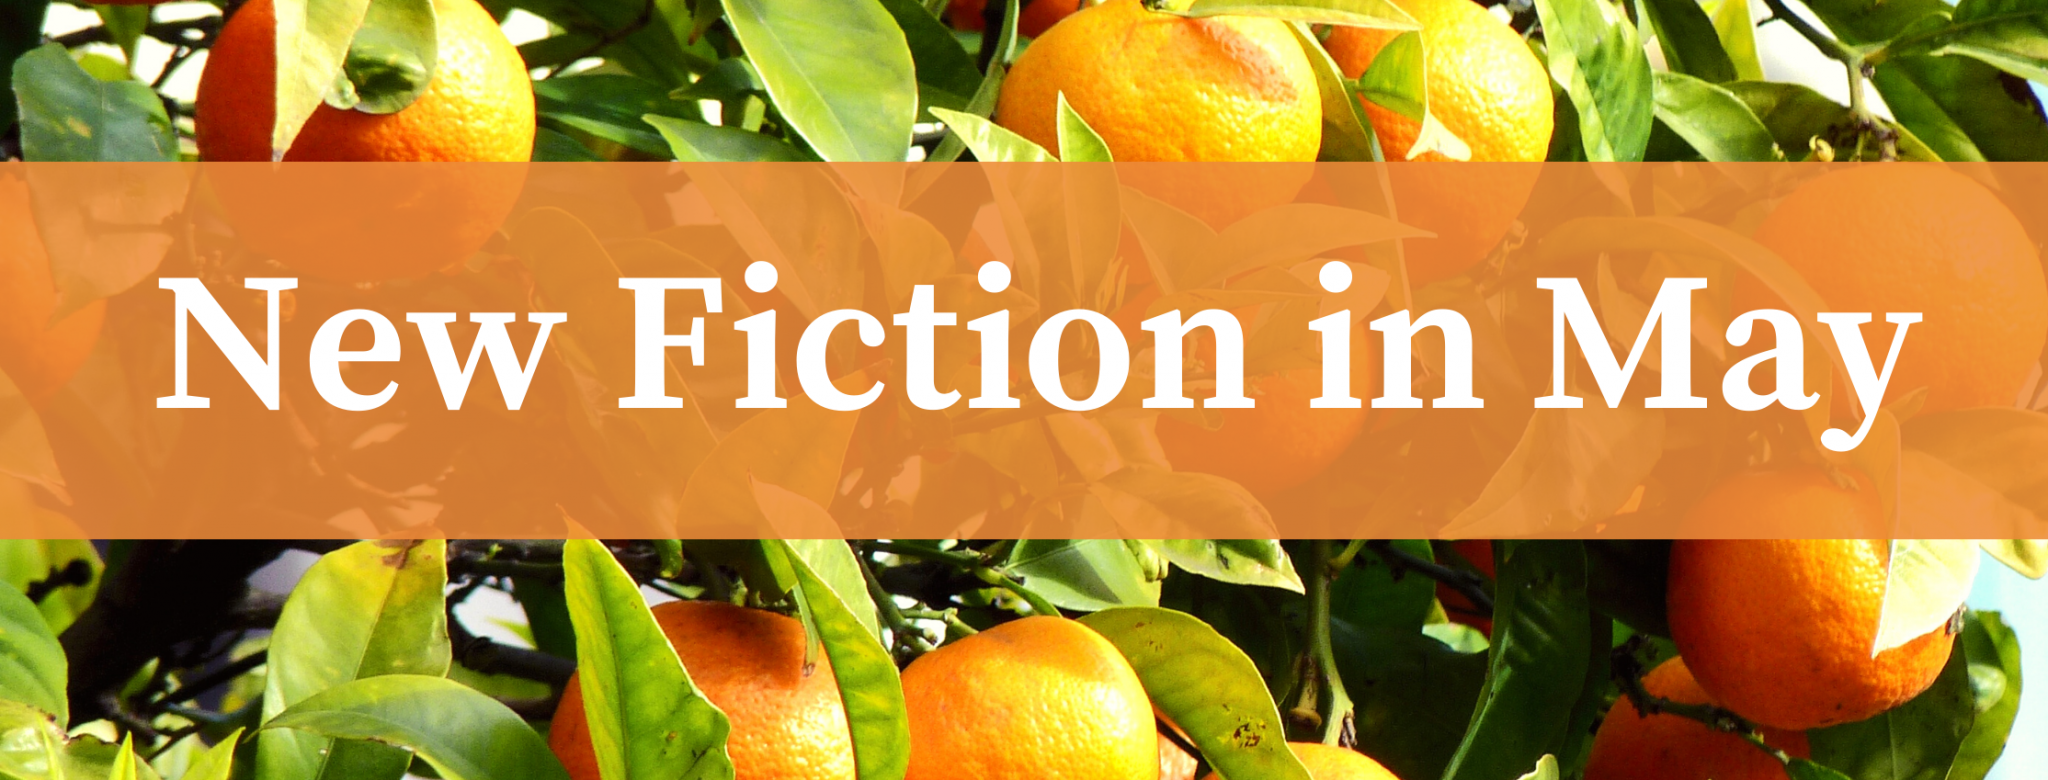 New Fiction in May